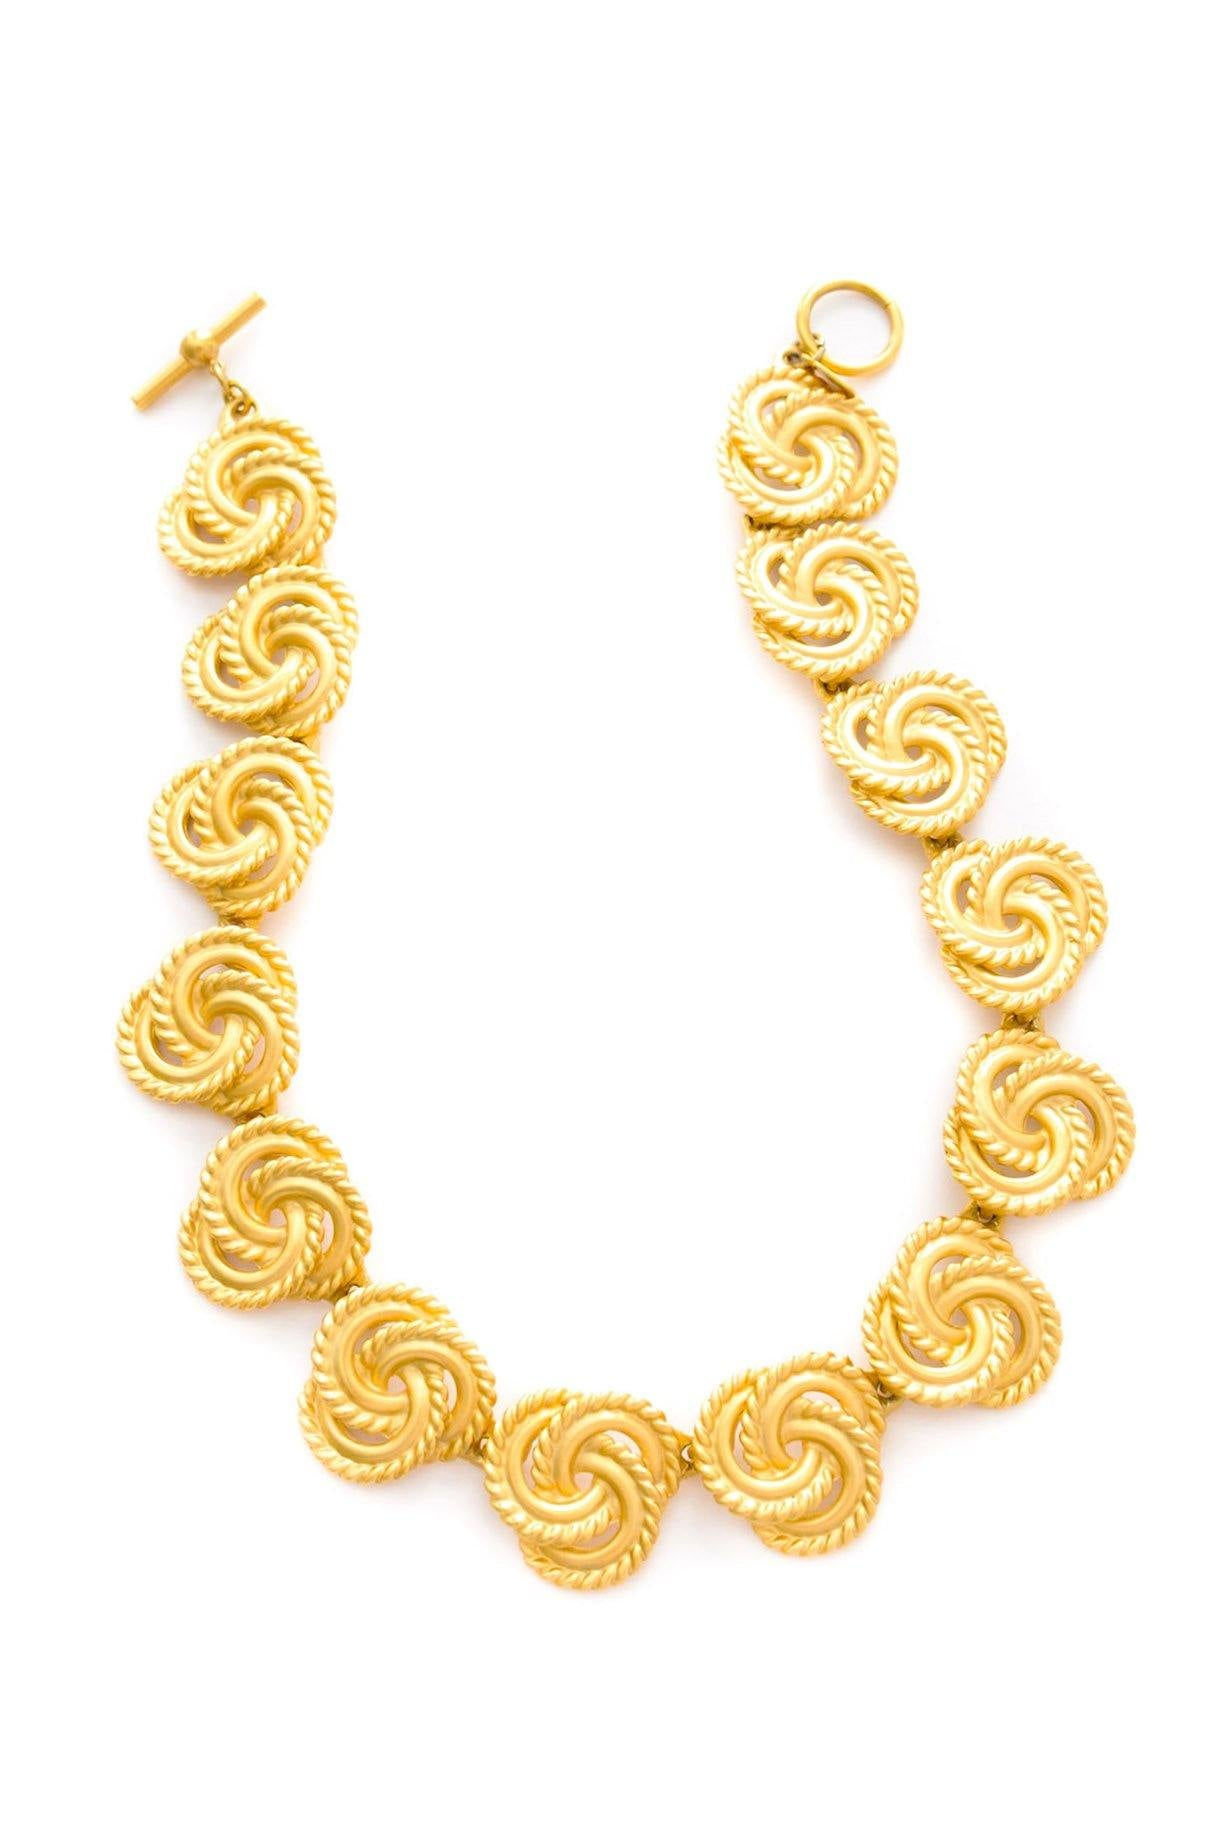 Vintage Anne Klein statement knot necklace from Sweet & Spark